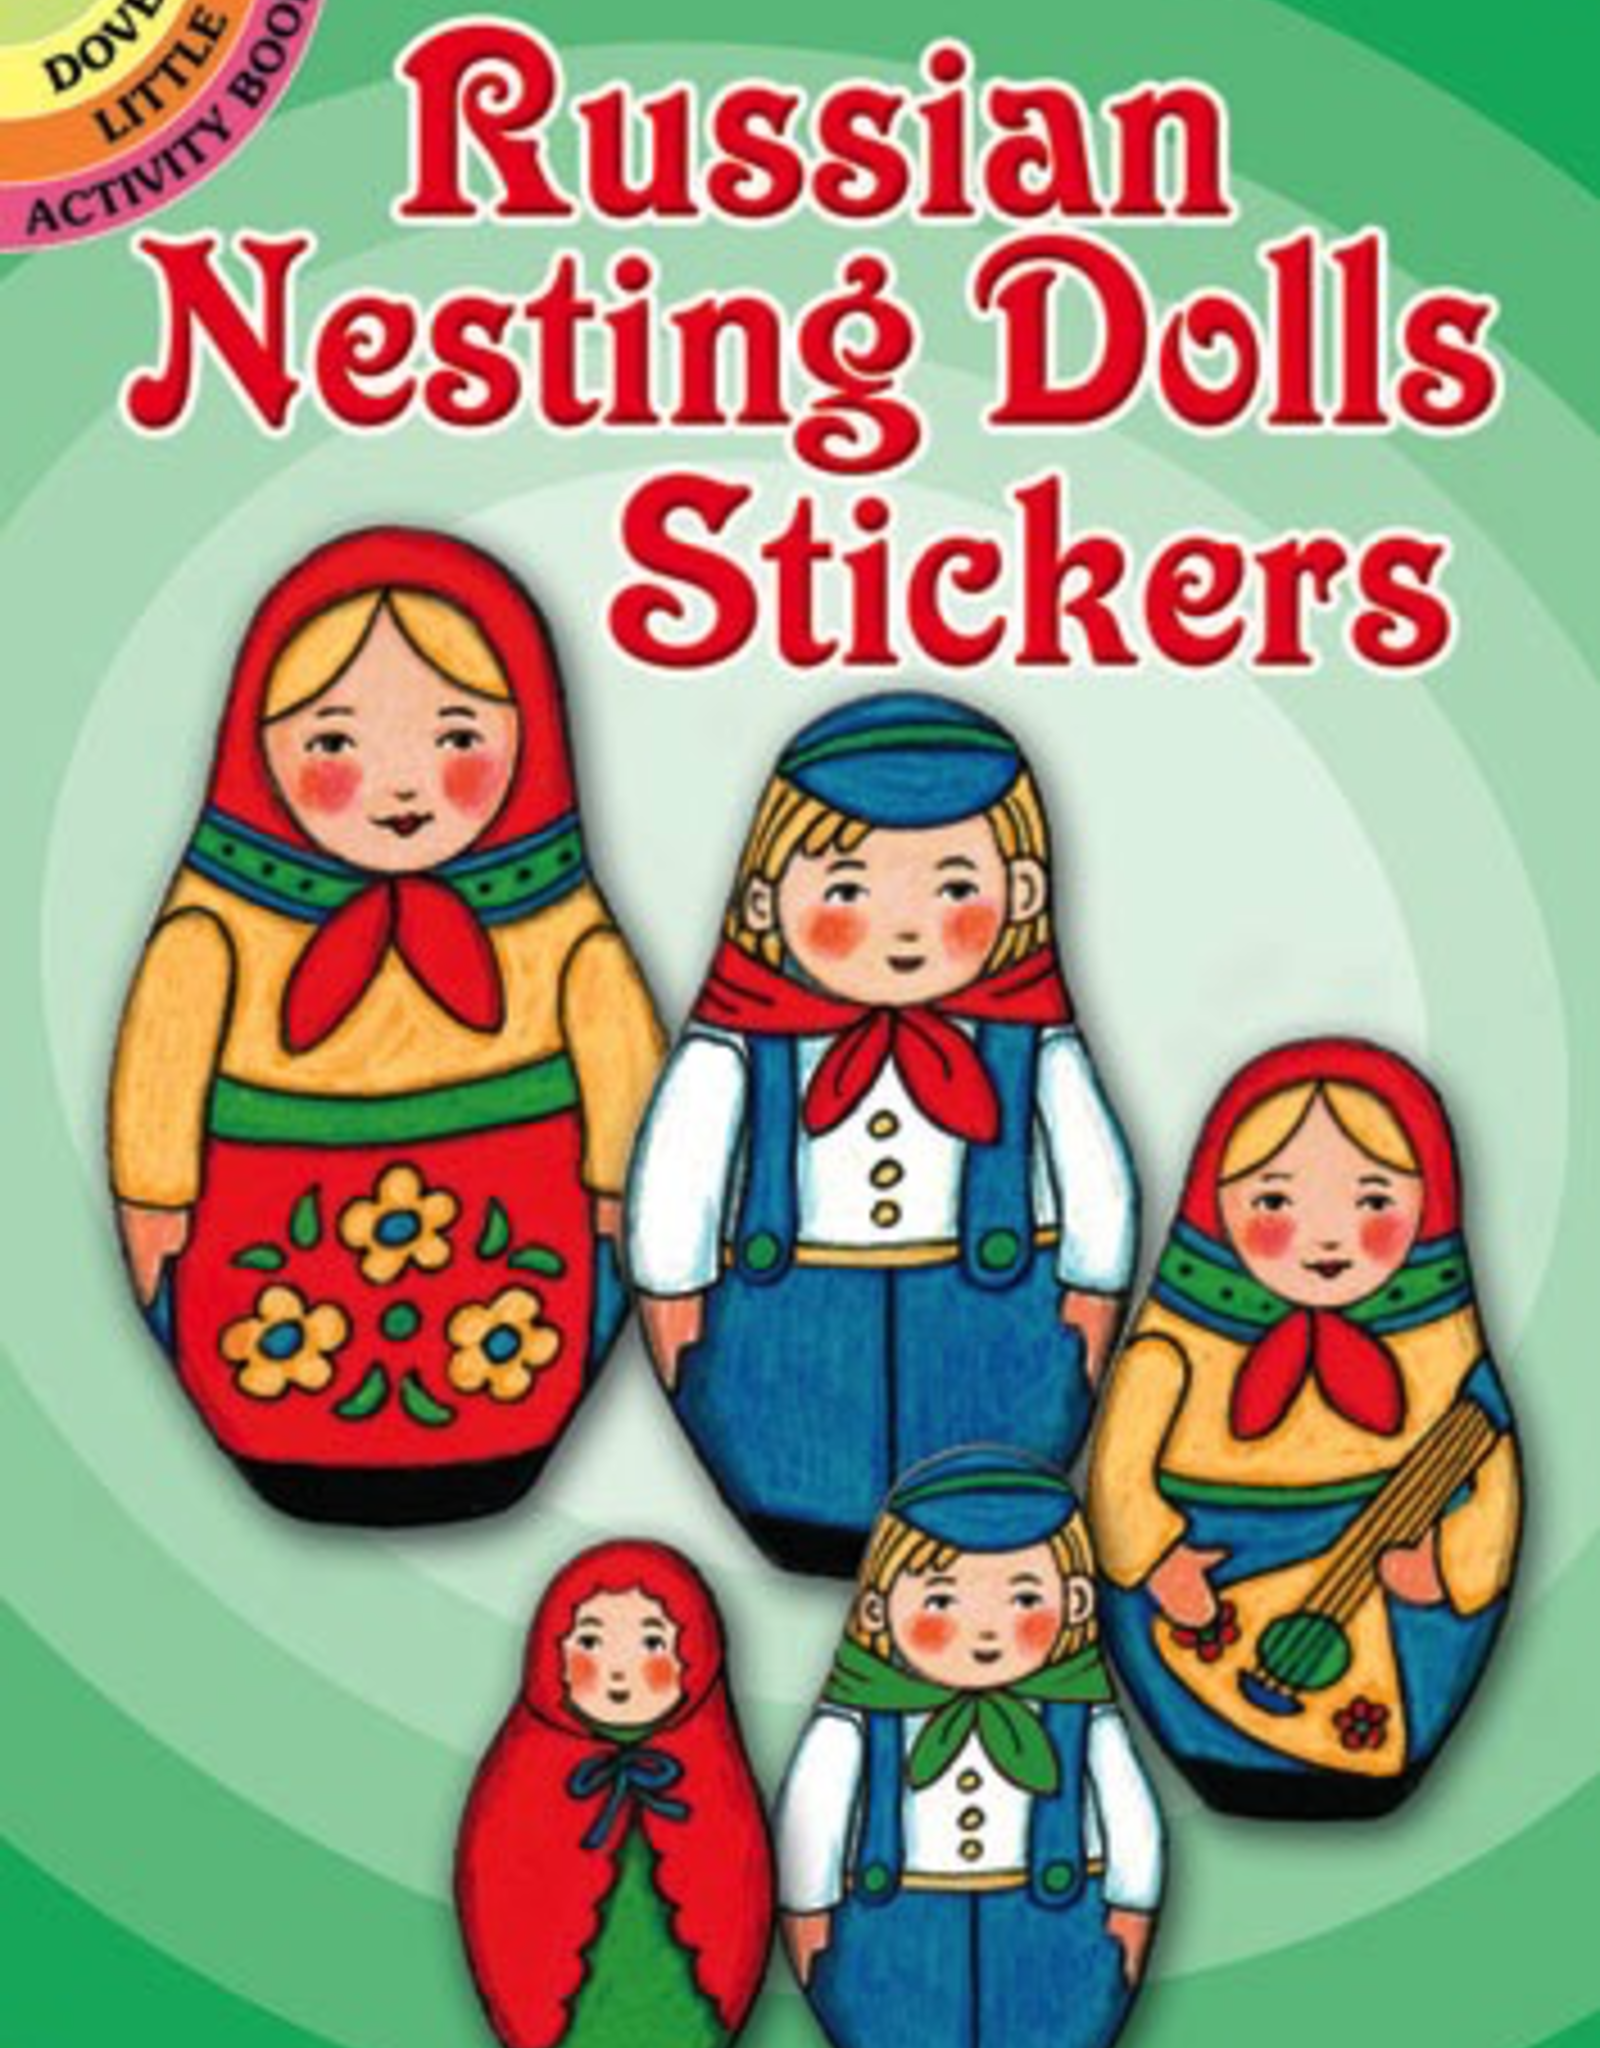 Dover Russian Nesting Dolls Stickers